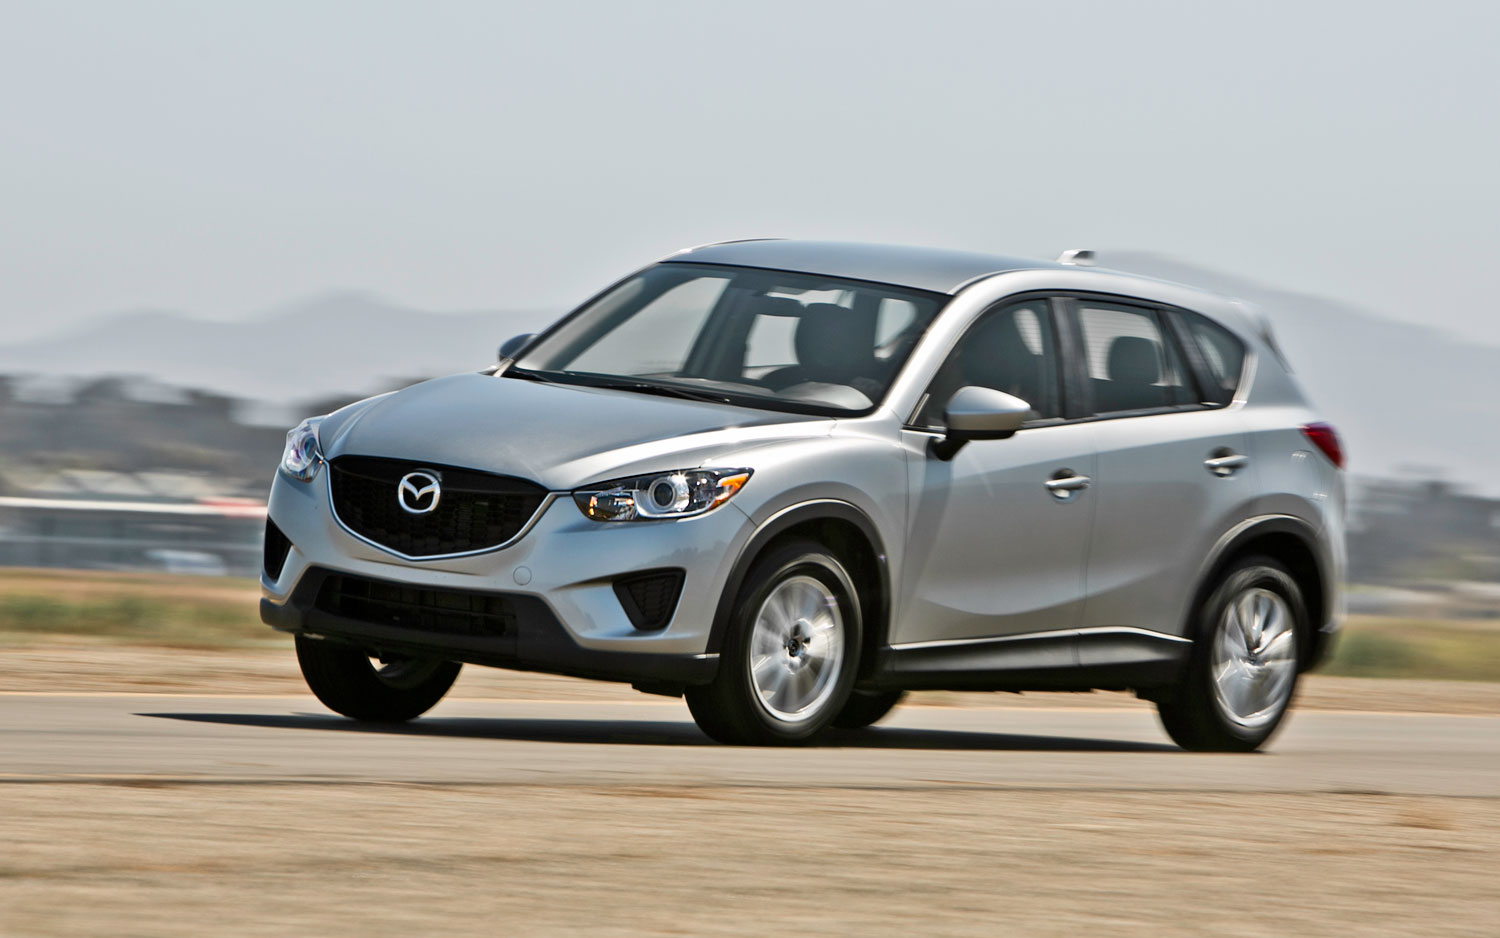 Experience The Joy Of Suv With New Mazda Cx5 171 Zoom Zoom